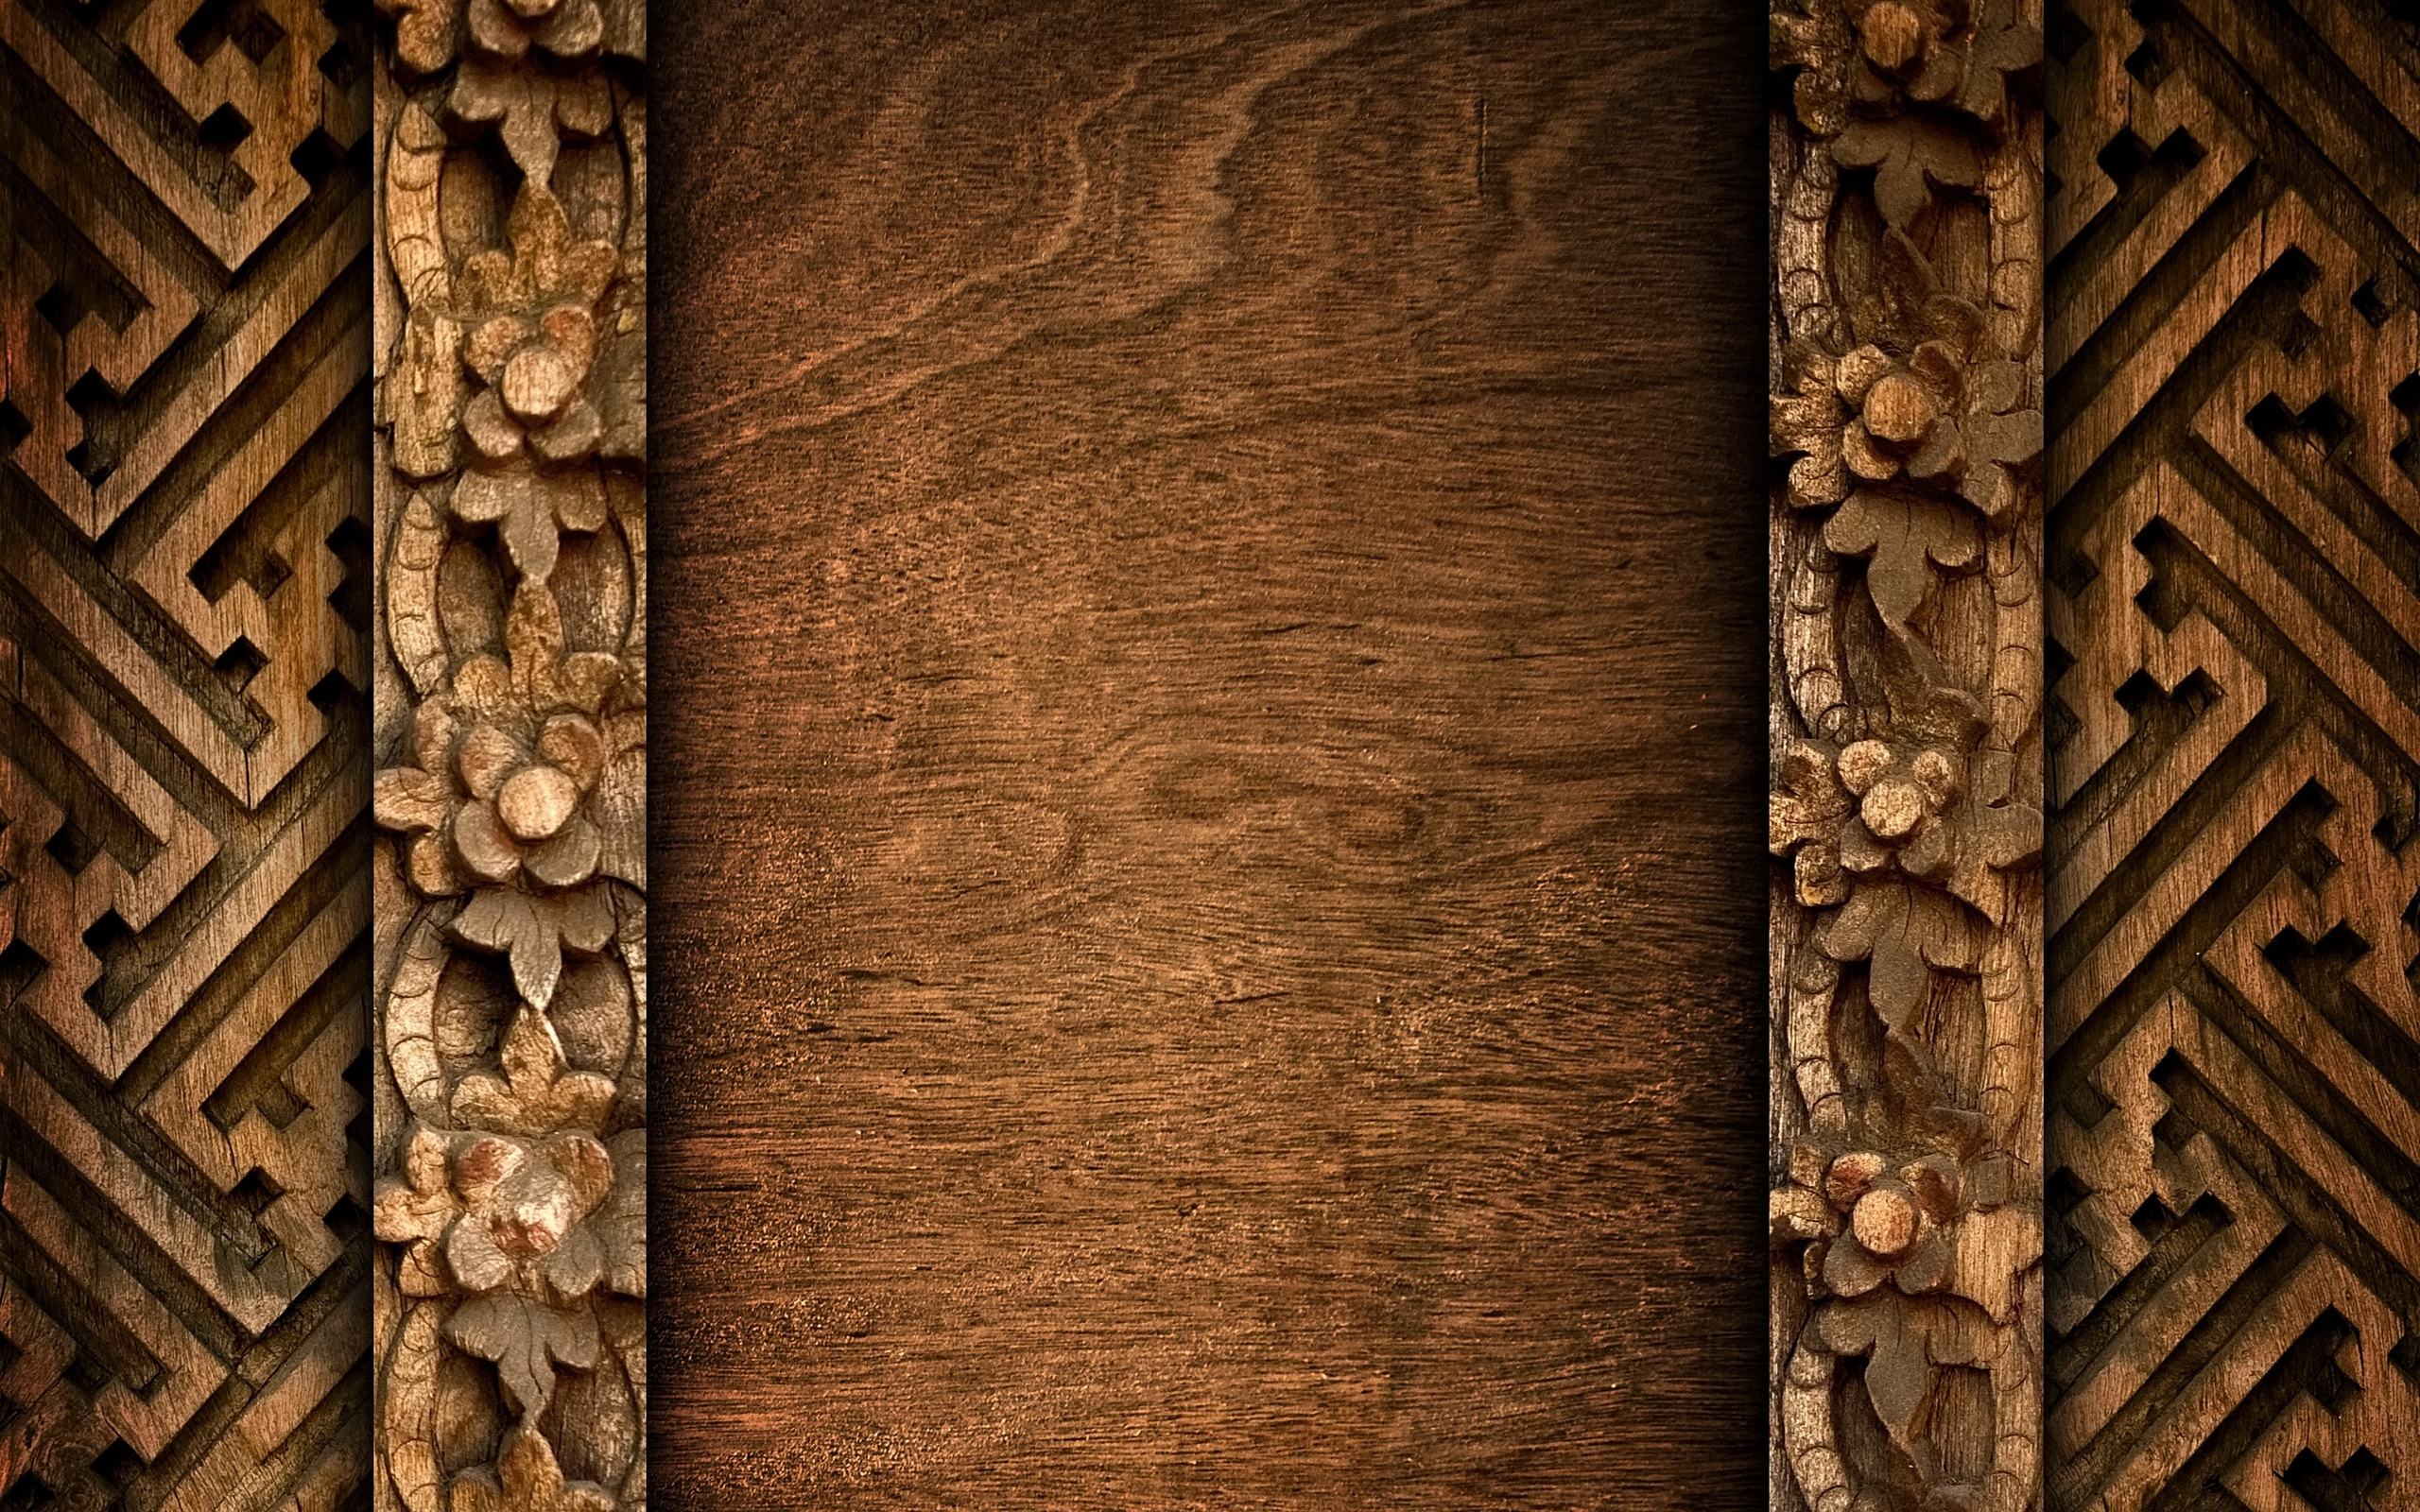 Wallpaper wood hd sf wallpaper 183 wood hd wallpapers backgrounds wallpaper abyss altavistaventures Image collections